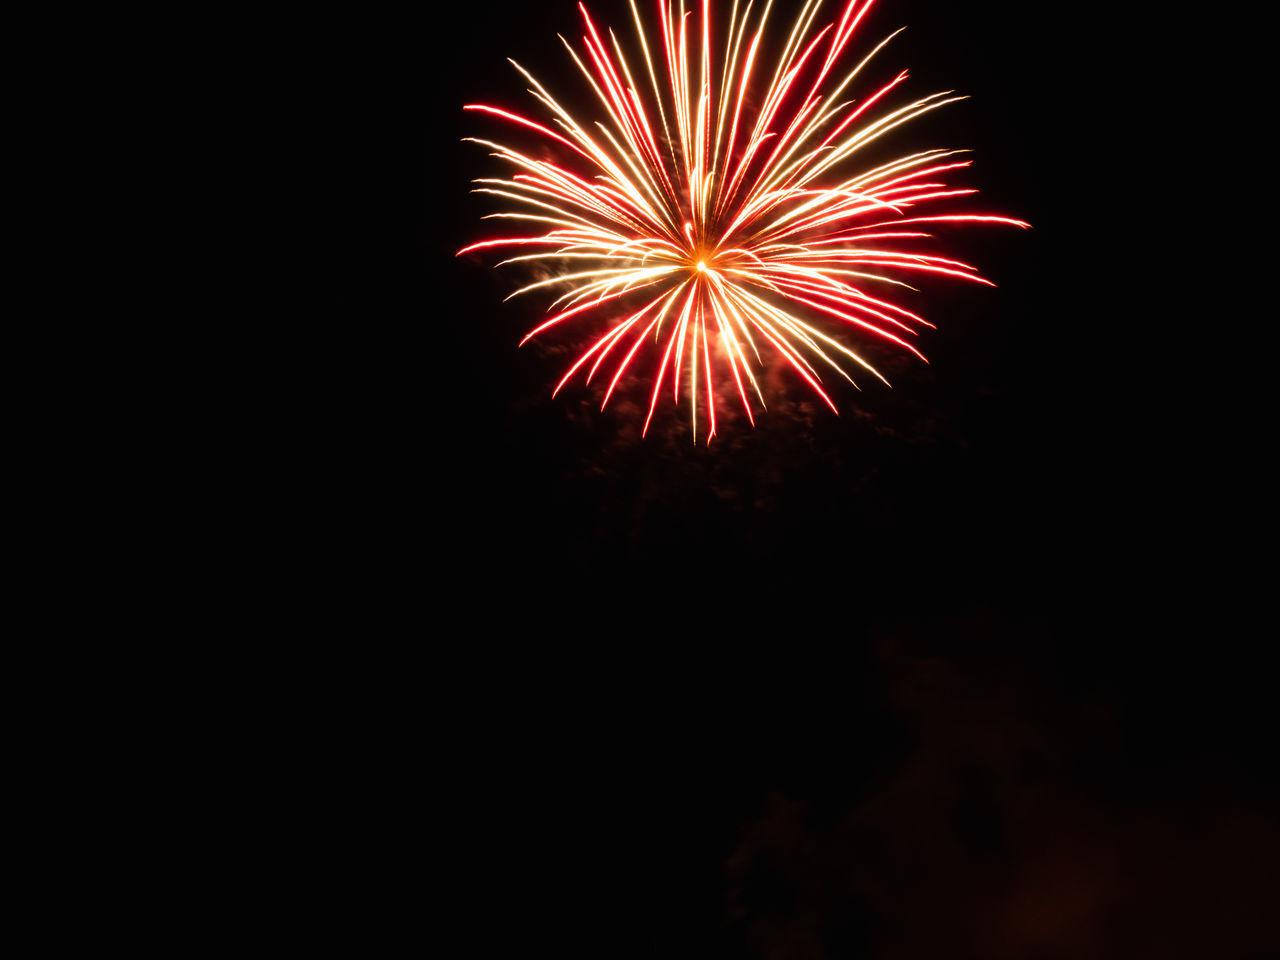 firework, arts culture and entertainment, celebration, event, night, firework display, exploding, motion, illuminated, low angle view, long exposure, no people, blurred motion, firework - man made object, glowing, sky, copy space, light, nature, dark, outdoors, sparks, black background